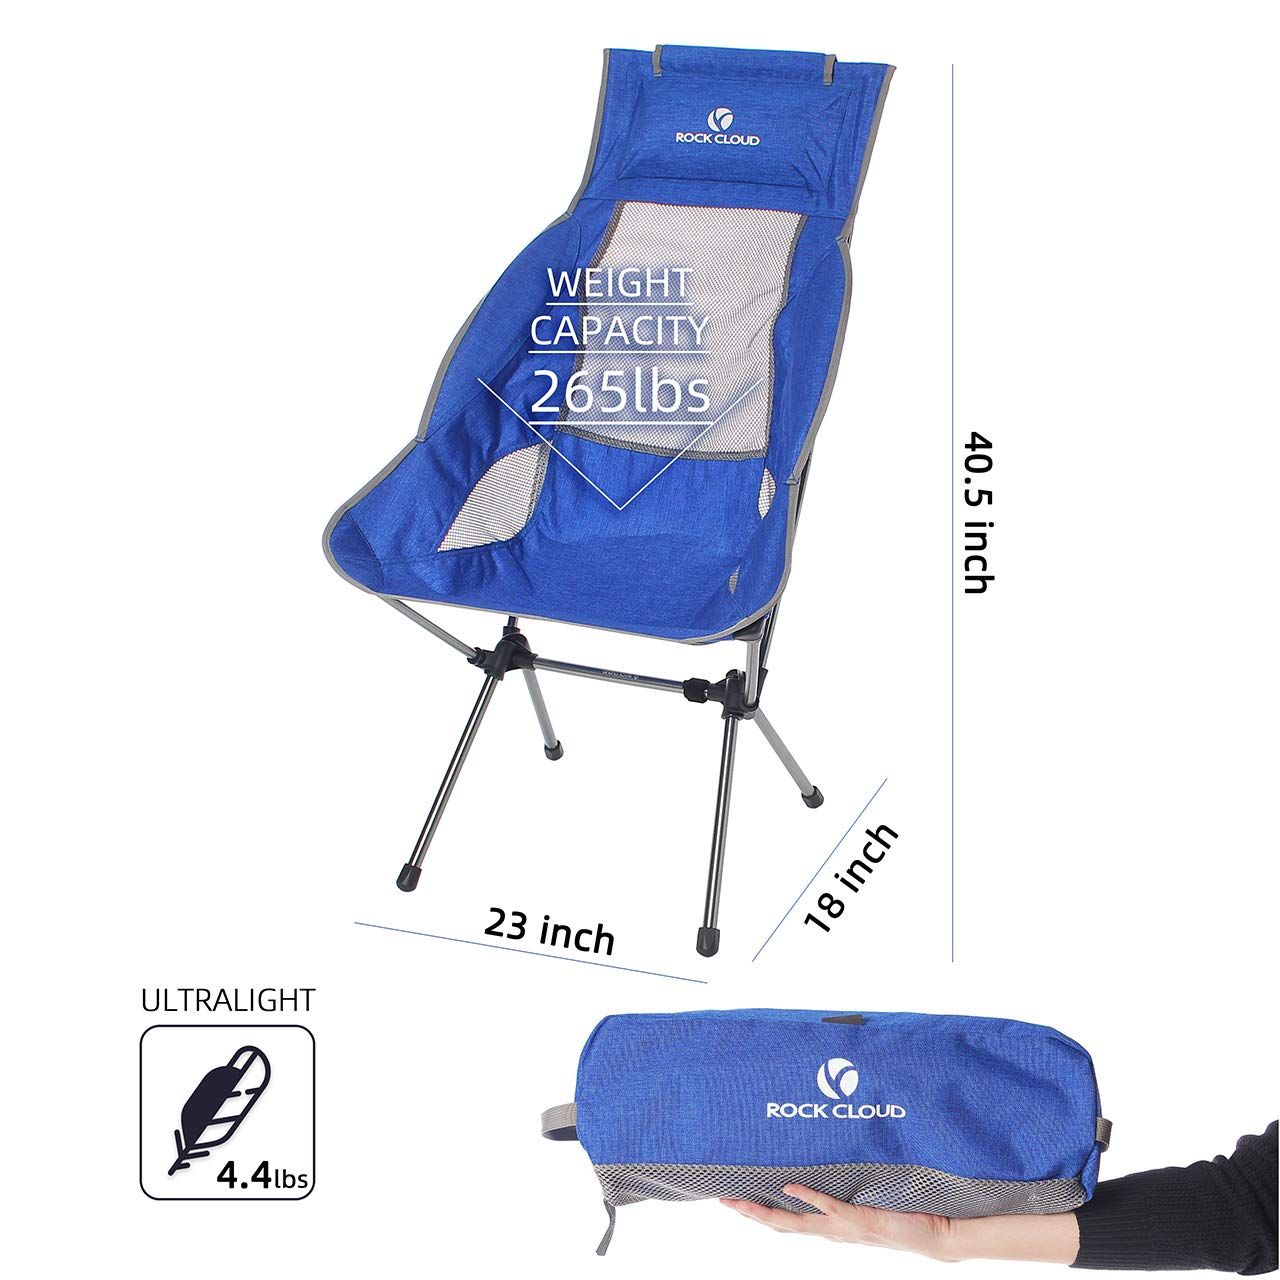 ROCK CLOUD Portable Camping Chair Ultralight High Back Folding Chairs Outdoor for Camp Hiking Backpacking Lawn Beach Sports Blue